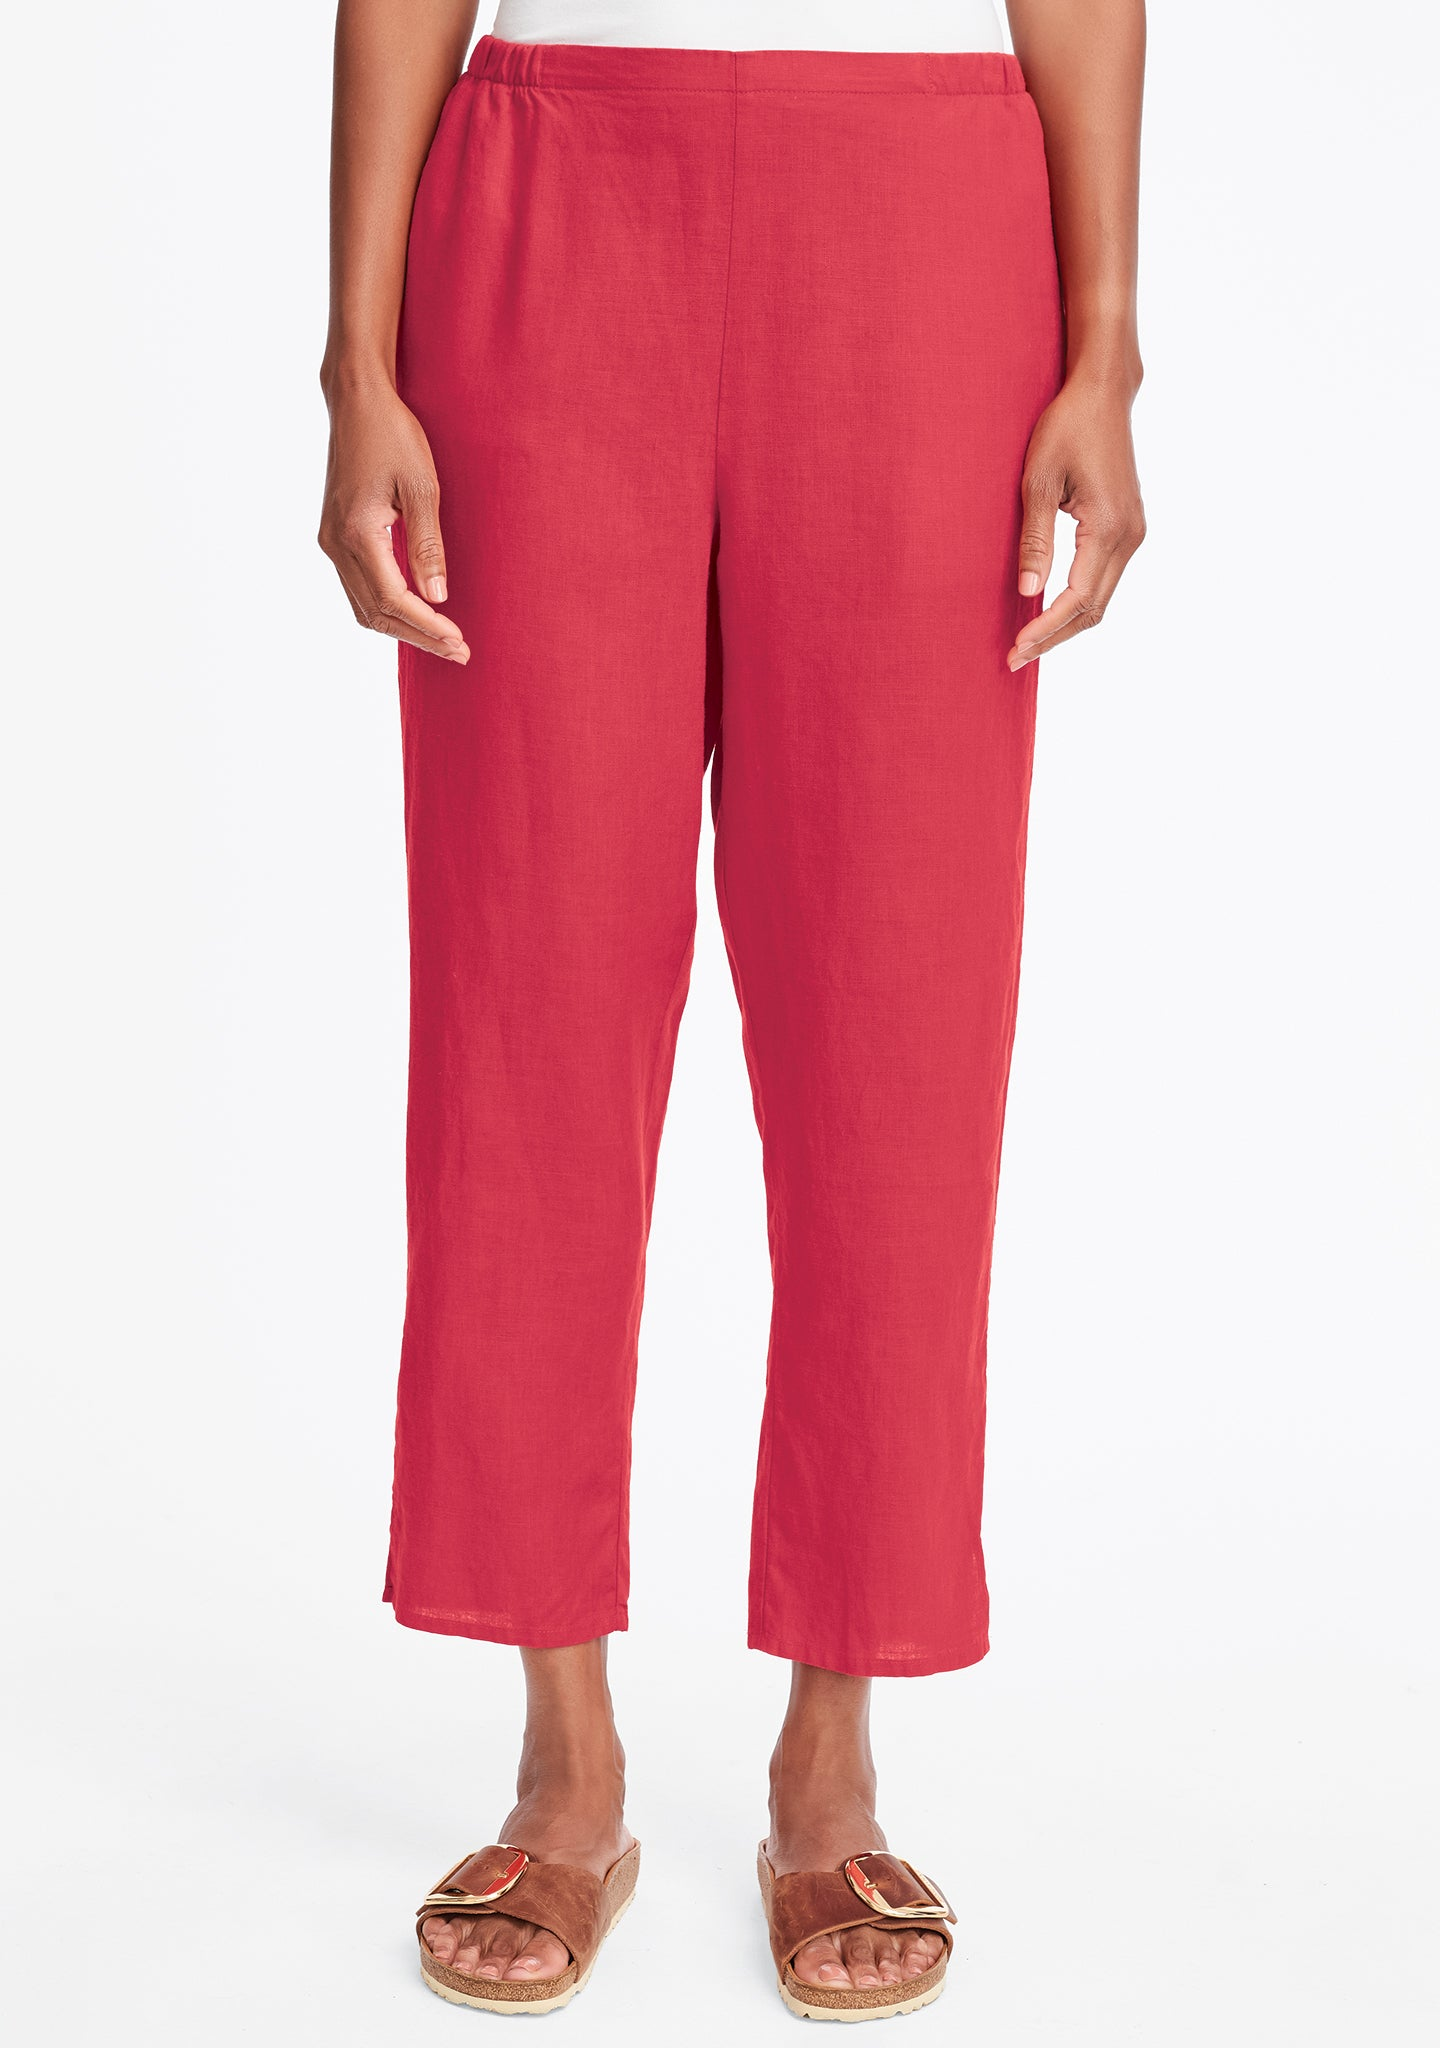 pocketed ankle pant linen pants red